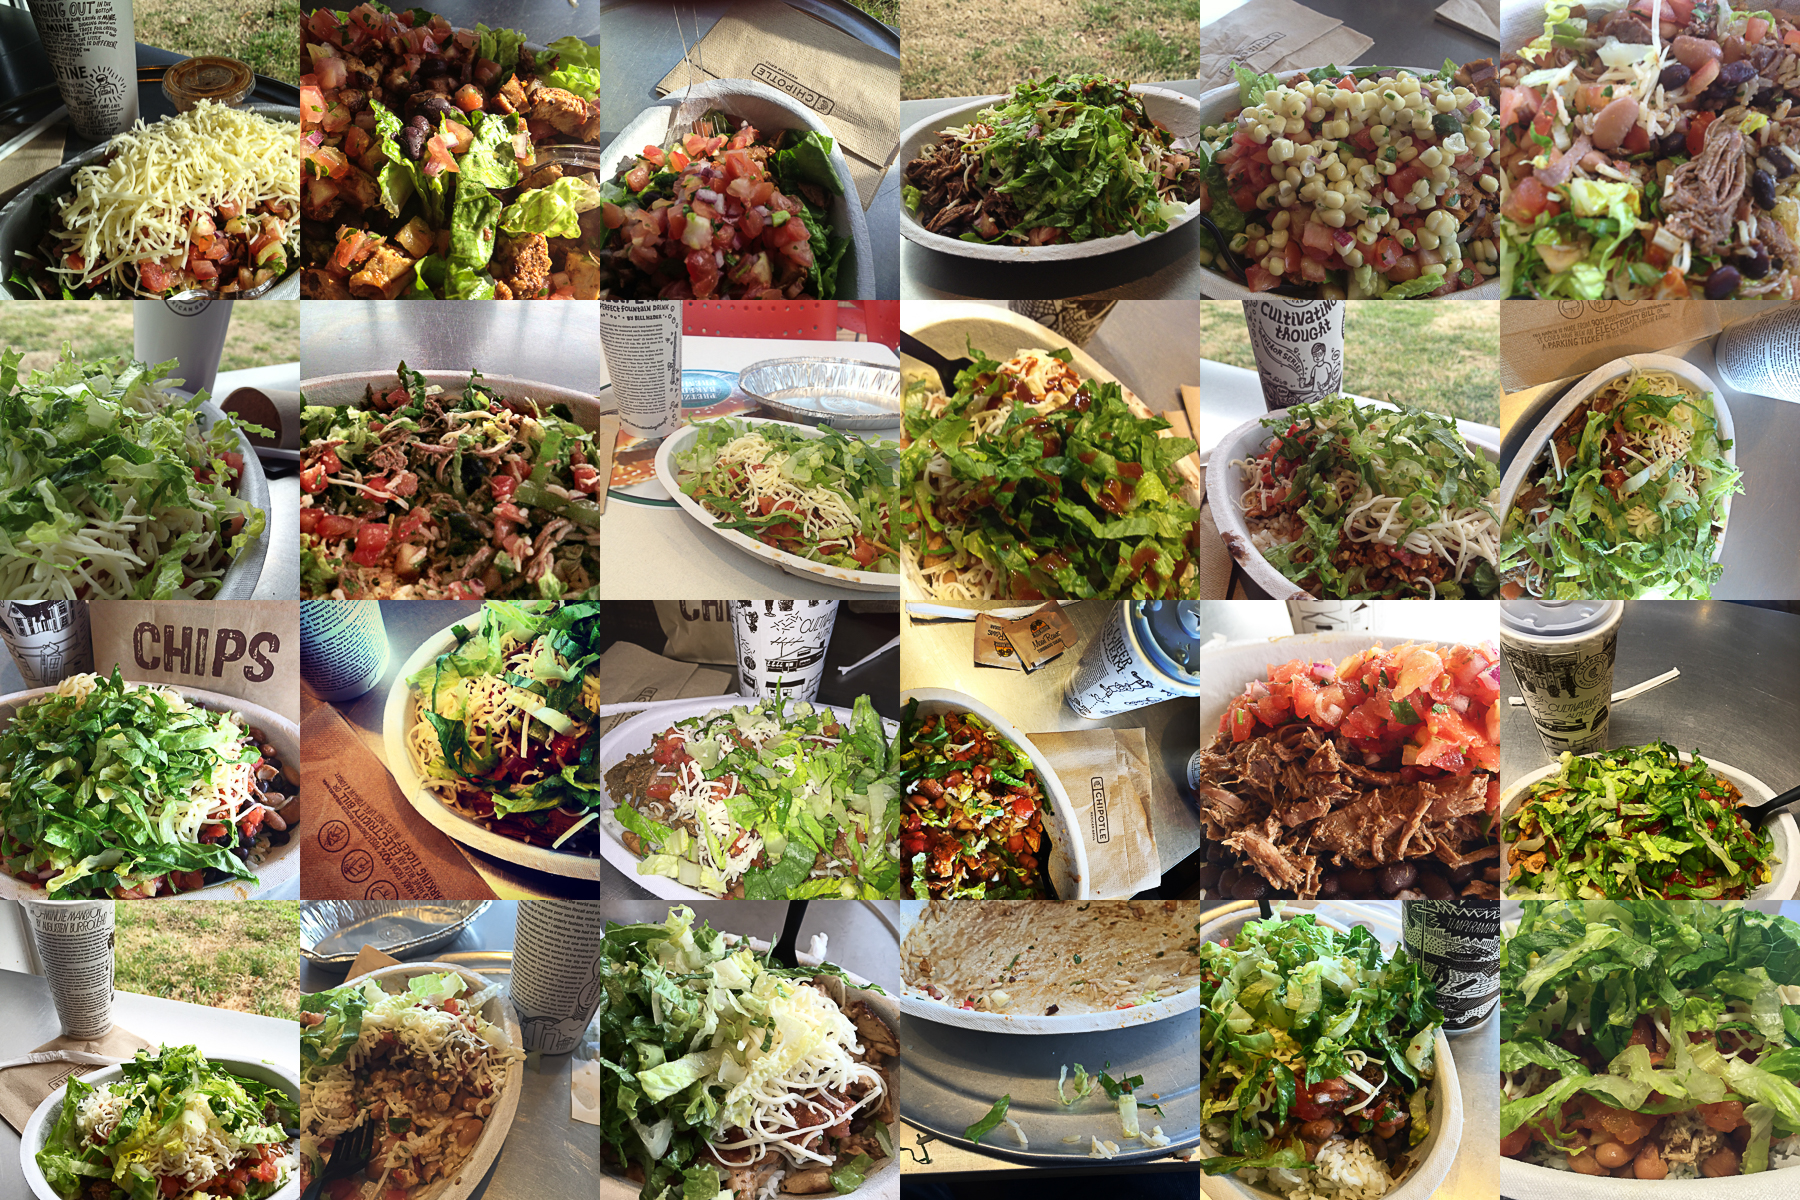 24 Chipotle lunches